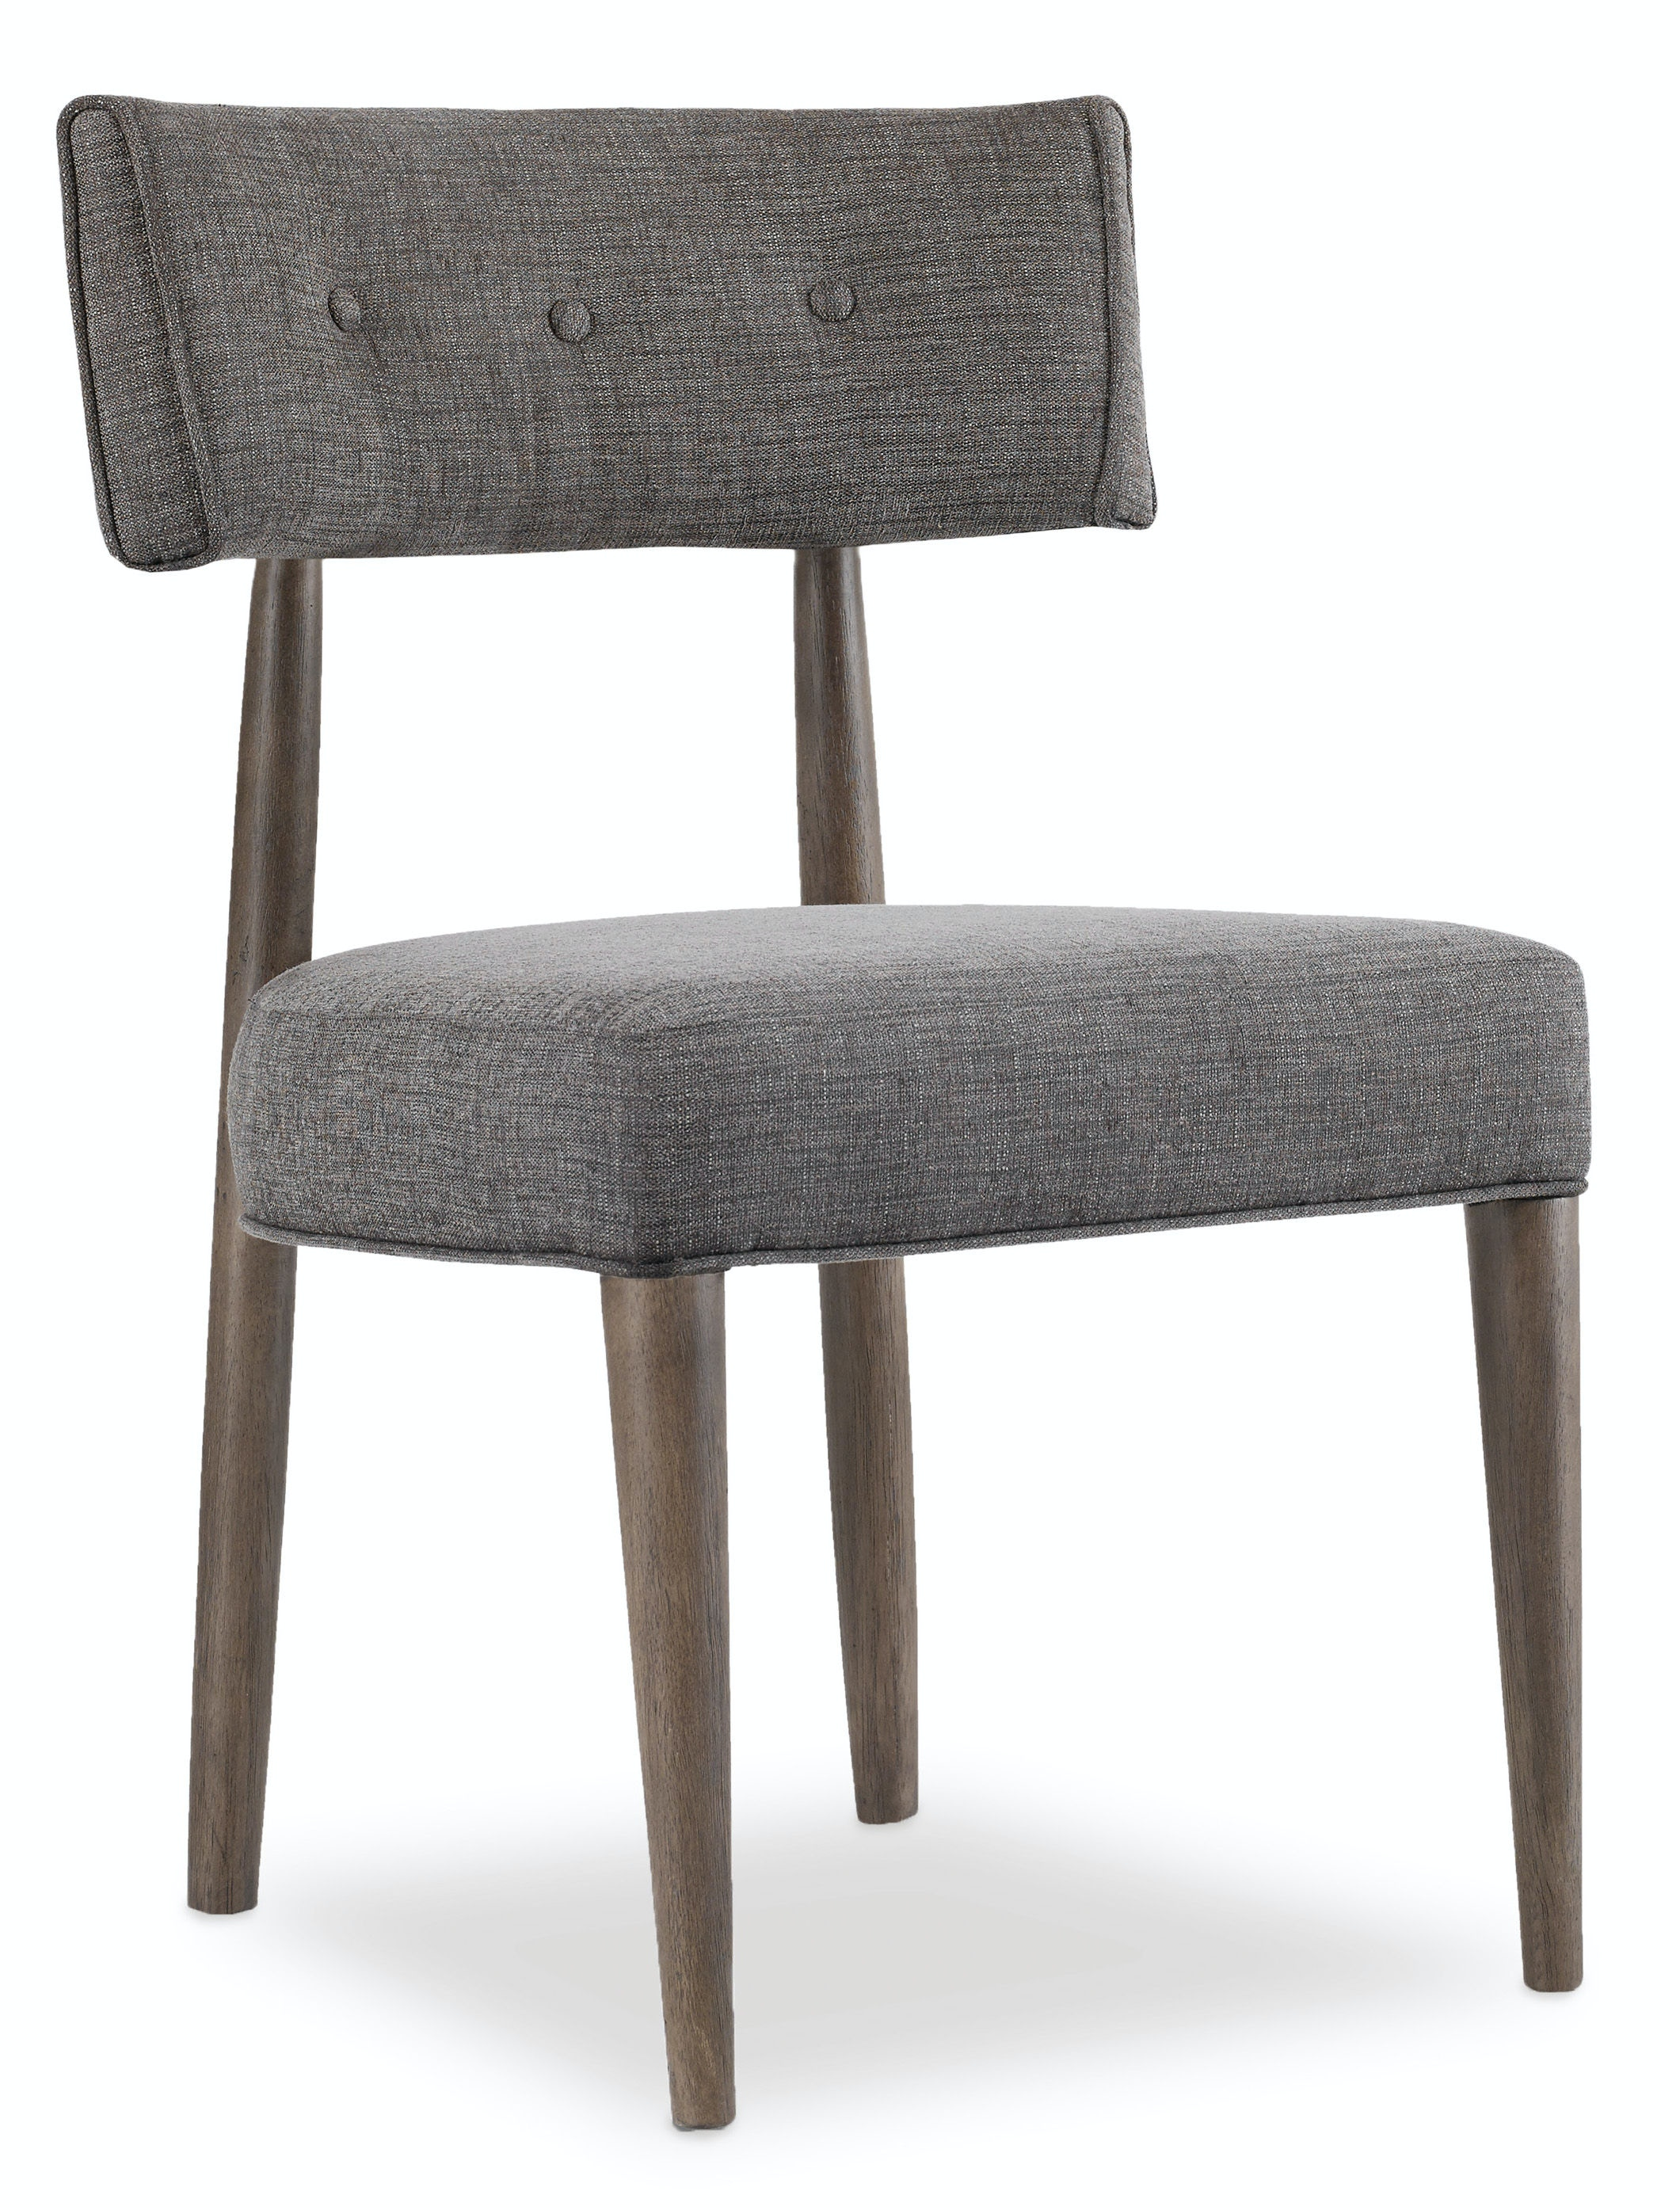 Hooker Furniture Dining Room Curata Upholstered Chair 1600